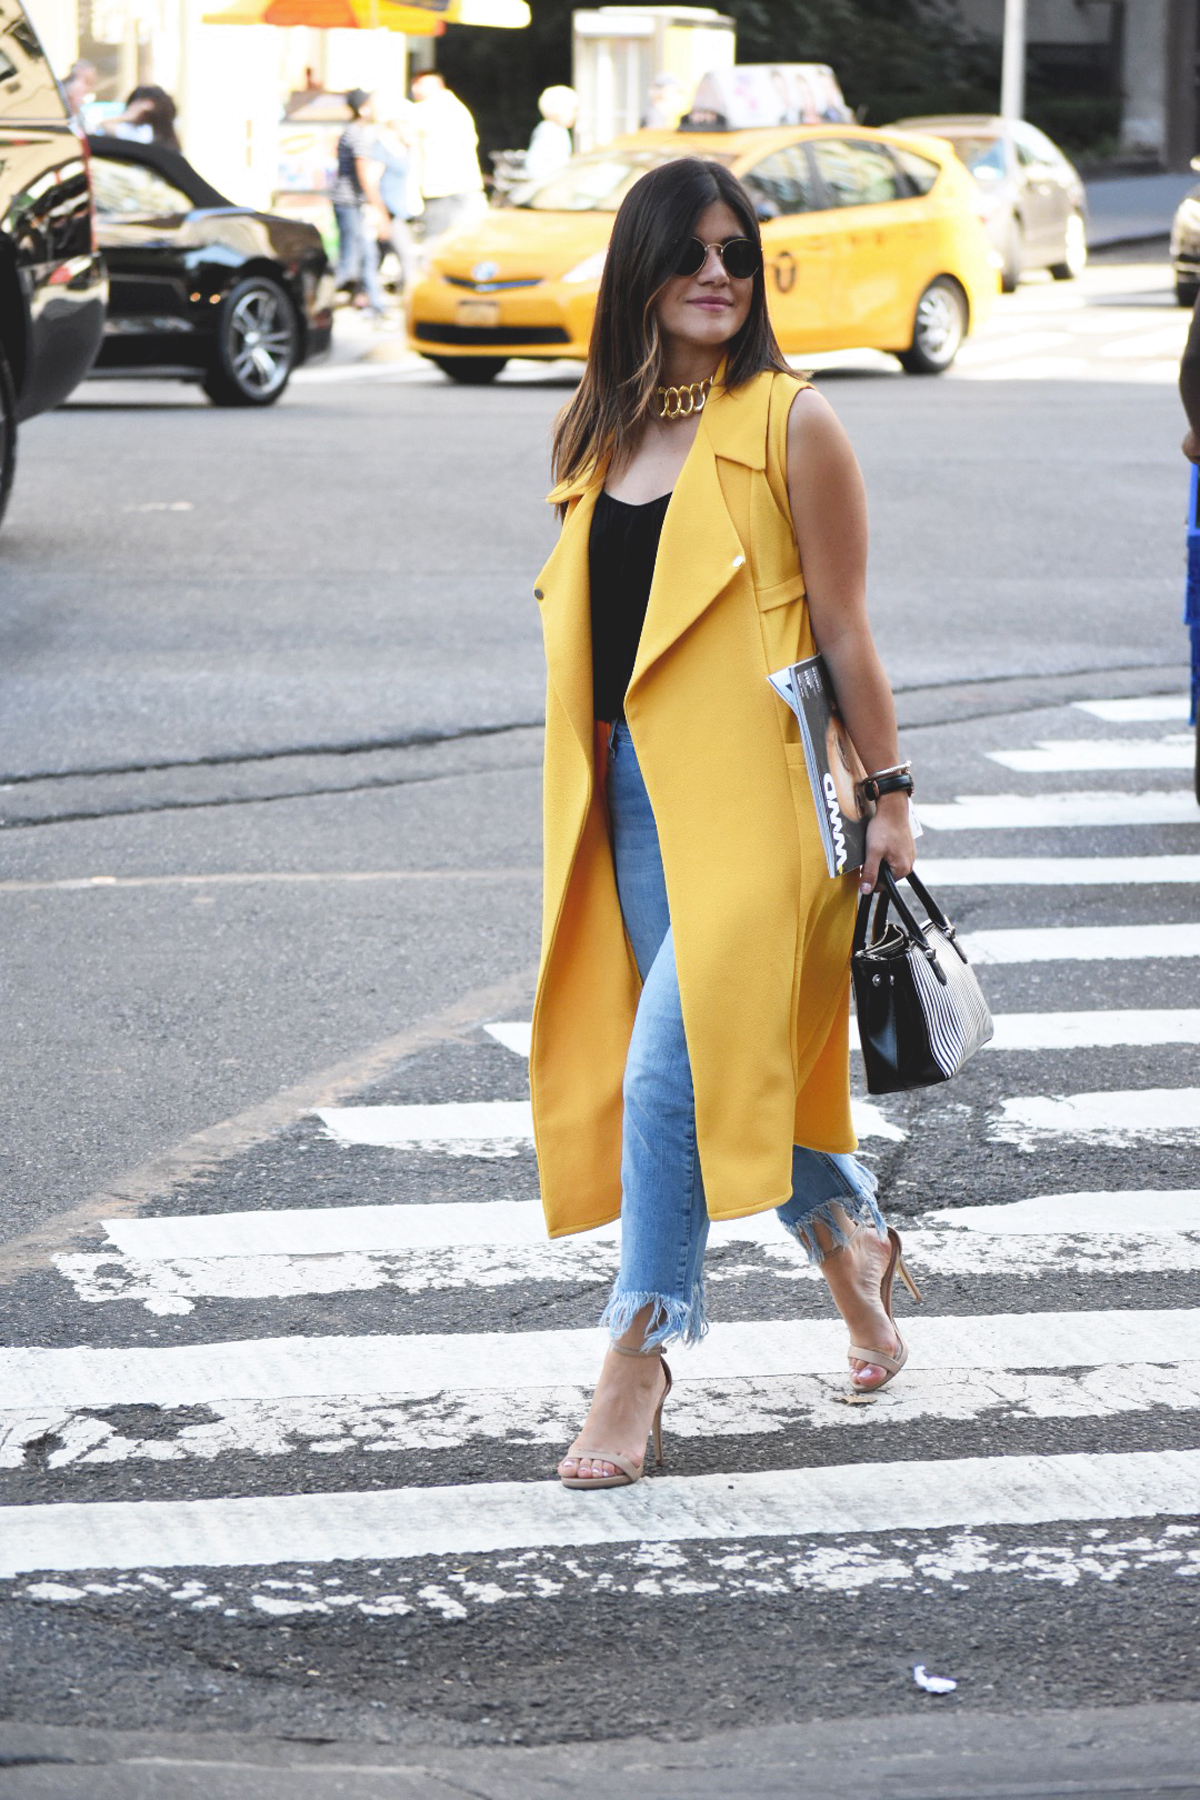 Carolina Hellal of Chic Talk wearing a Shein yellow maxi vest, Top shop fringed hem jeans, Rayban rounded sunglasses, Ralph Lauren striped bag, and Steve Madden beige strap sandals